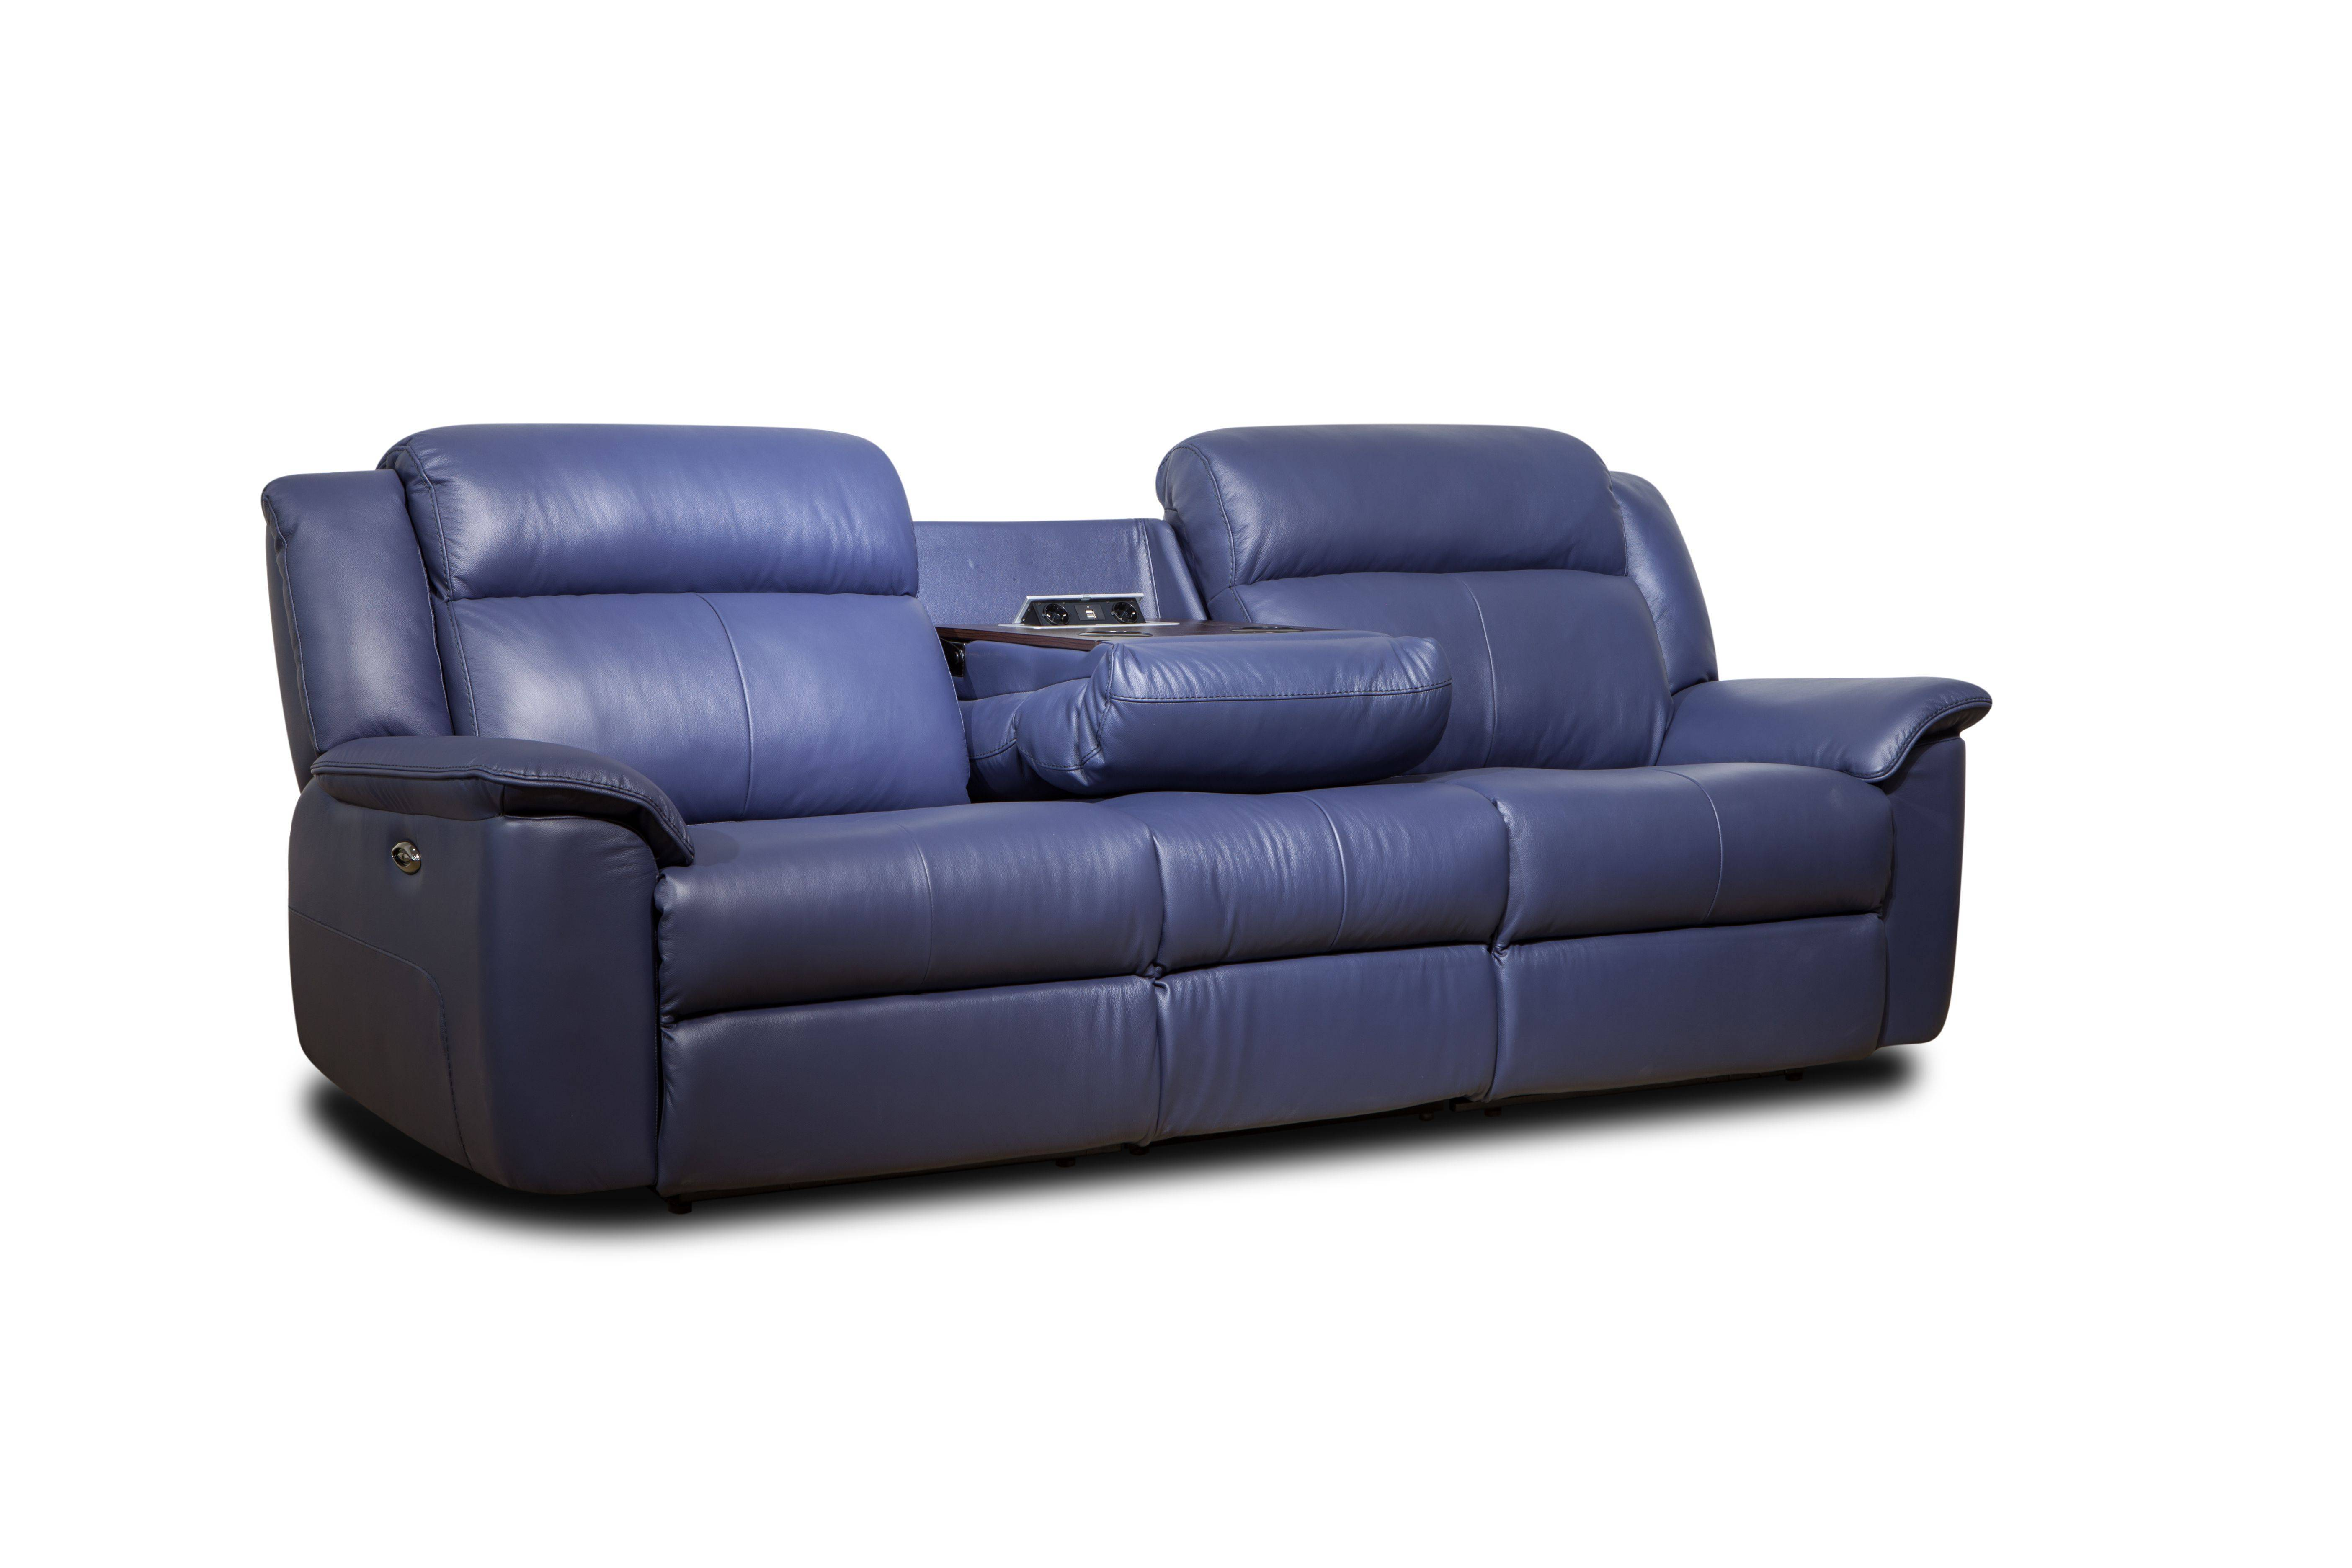 Modern Blue Leather 3 Seater Electric Sofa Recliner With Chaise